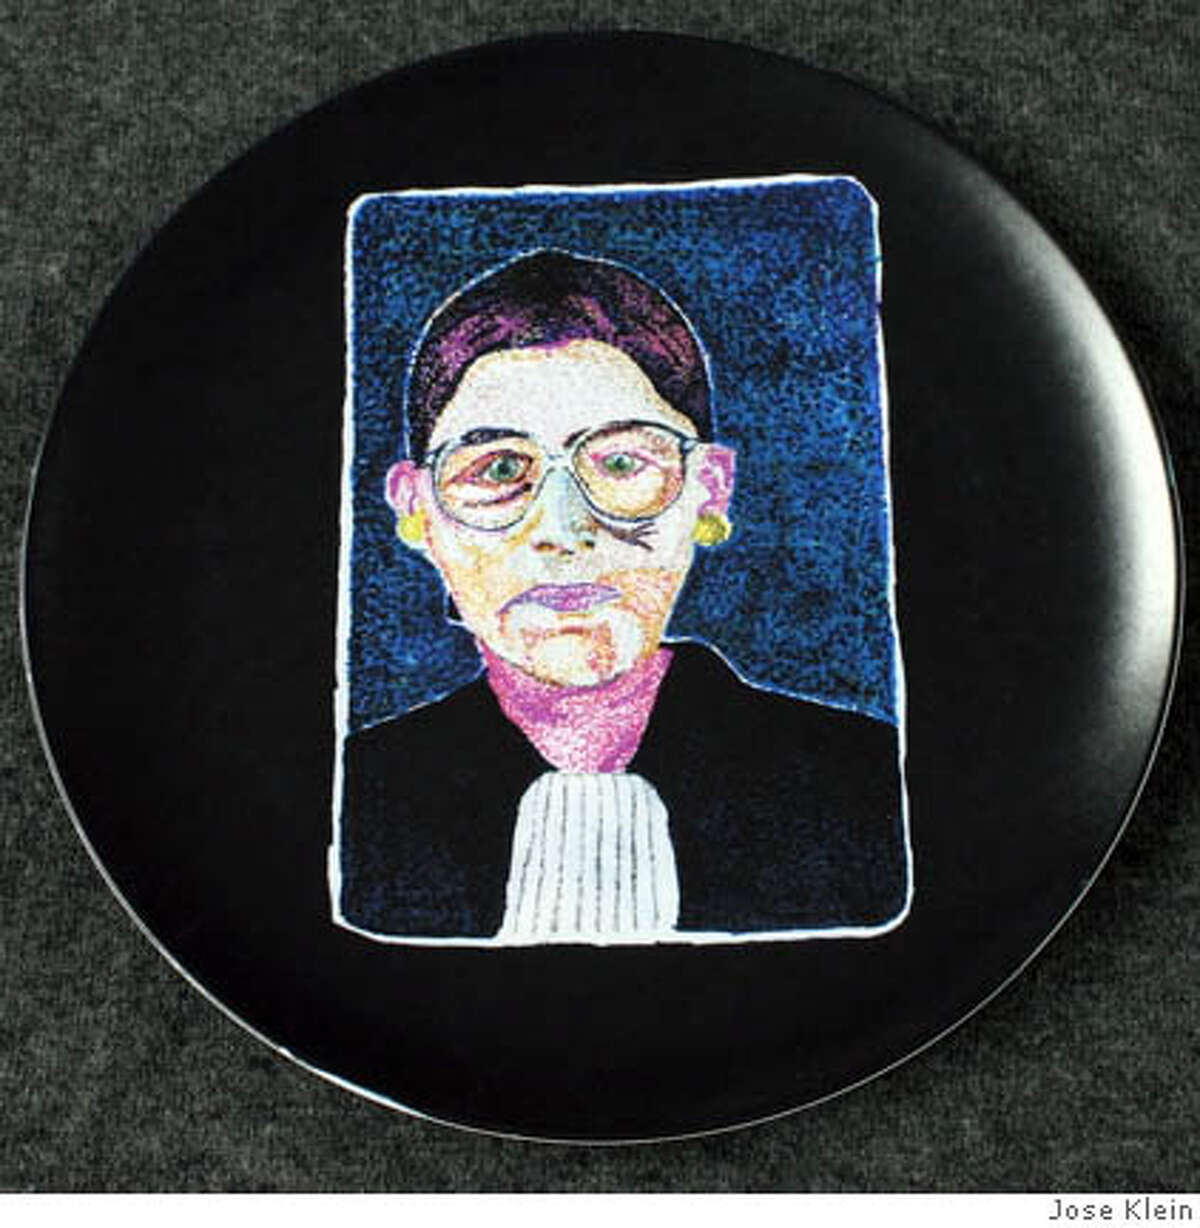 Ruth Bader Ginsburg, from artist José Klein's Supremes collection of melamine plates. Photo courtesy of José Klein